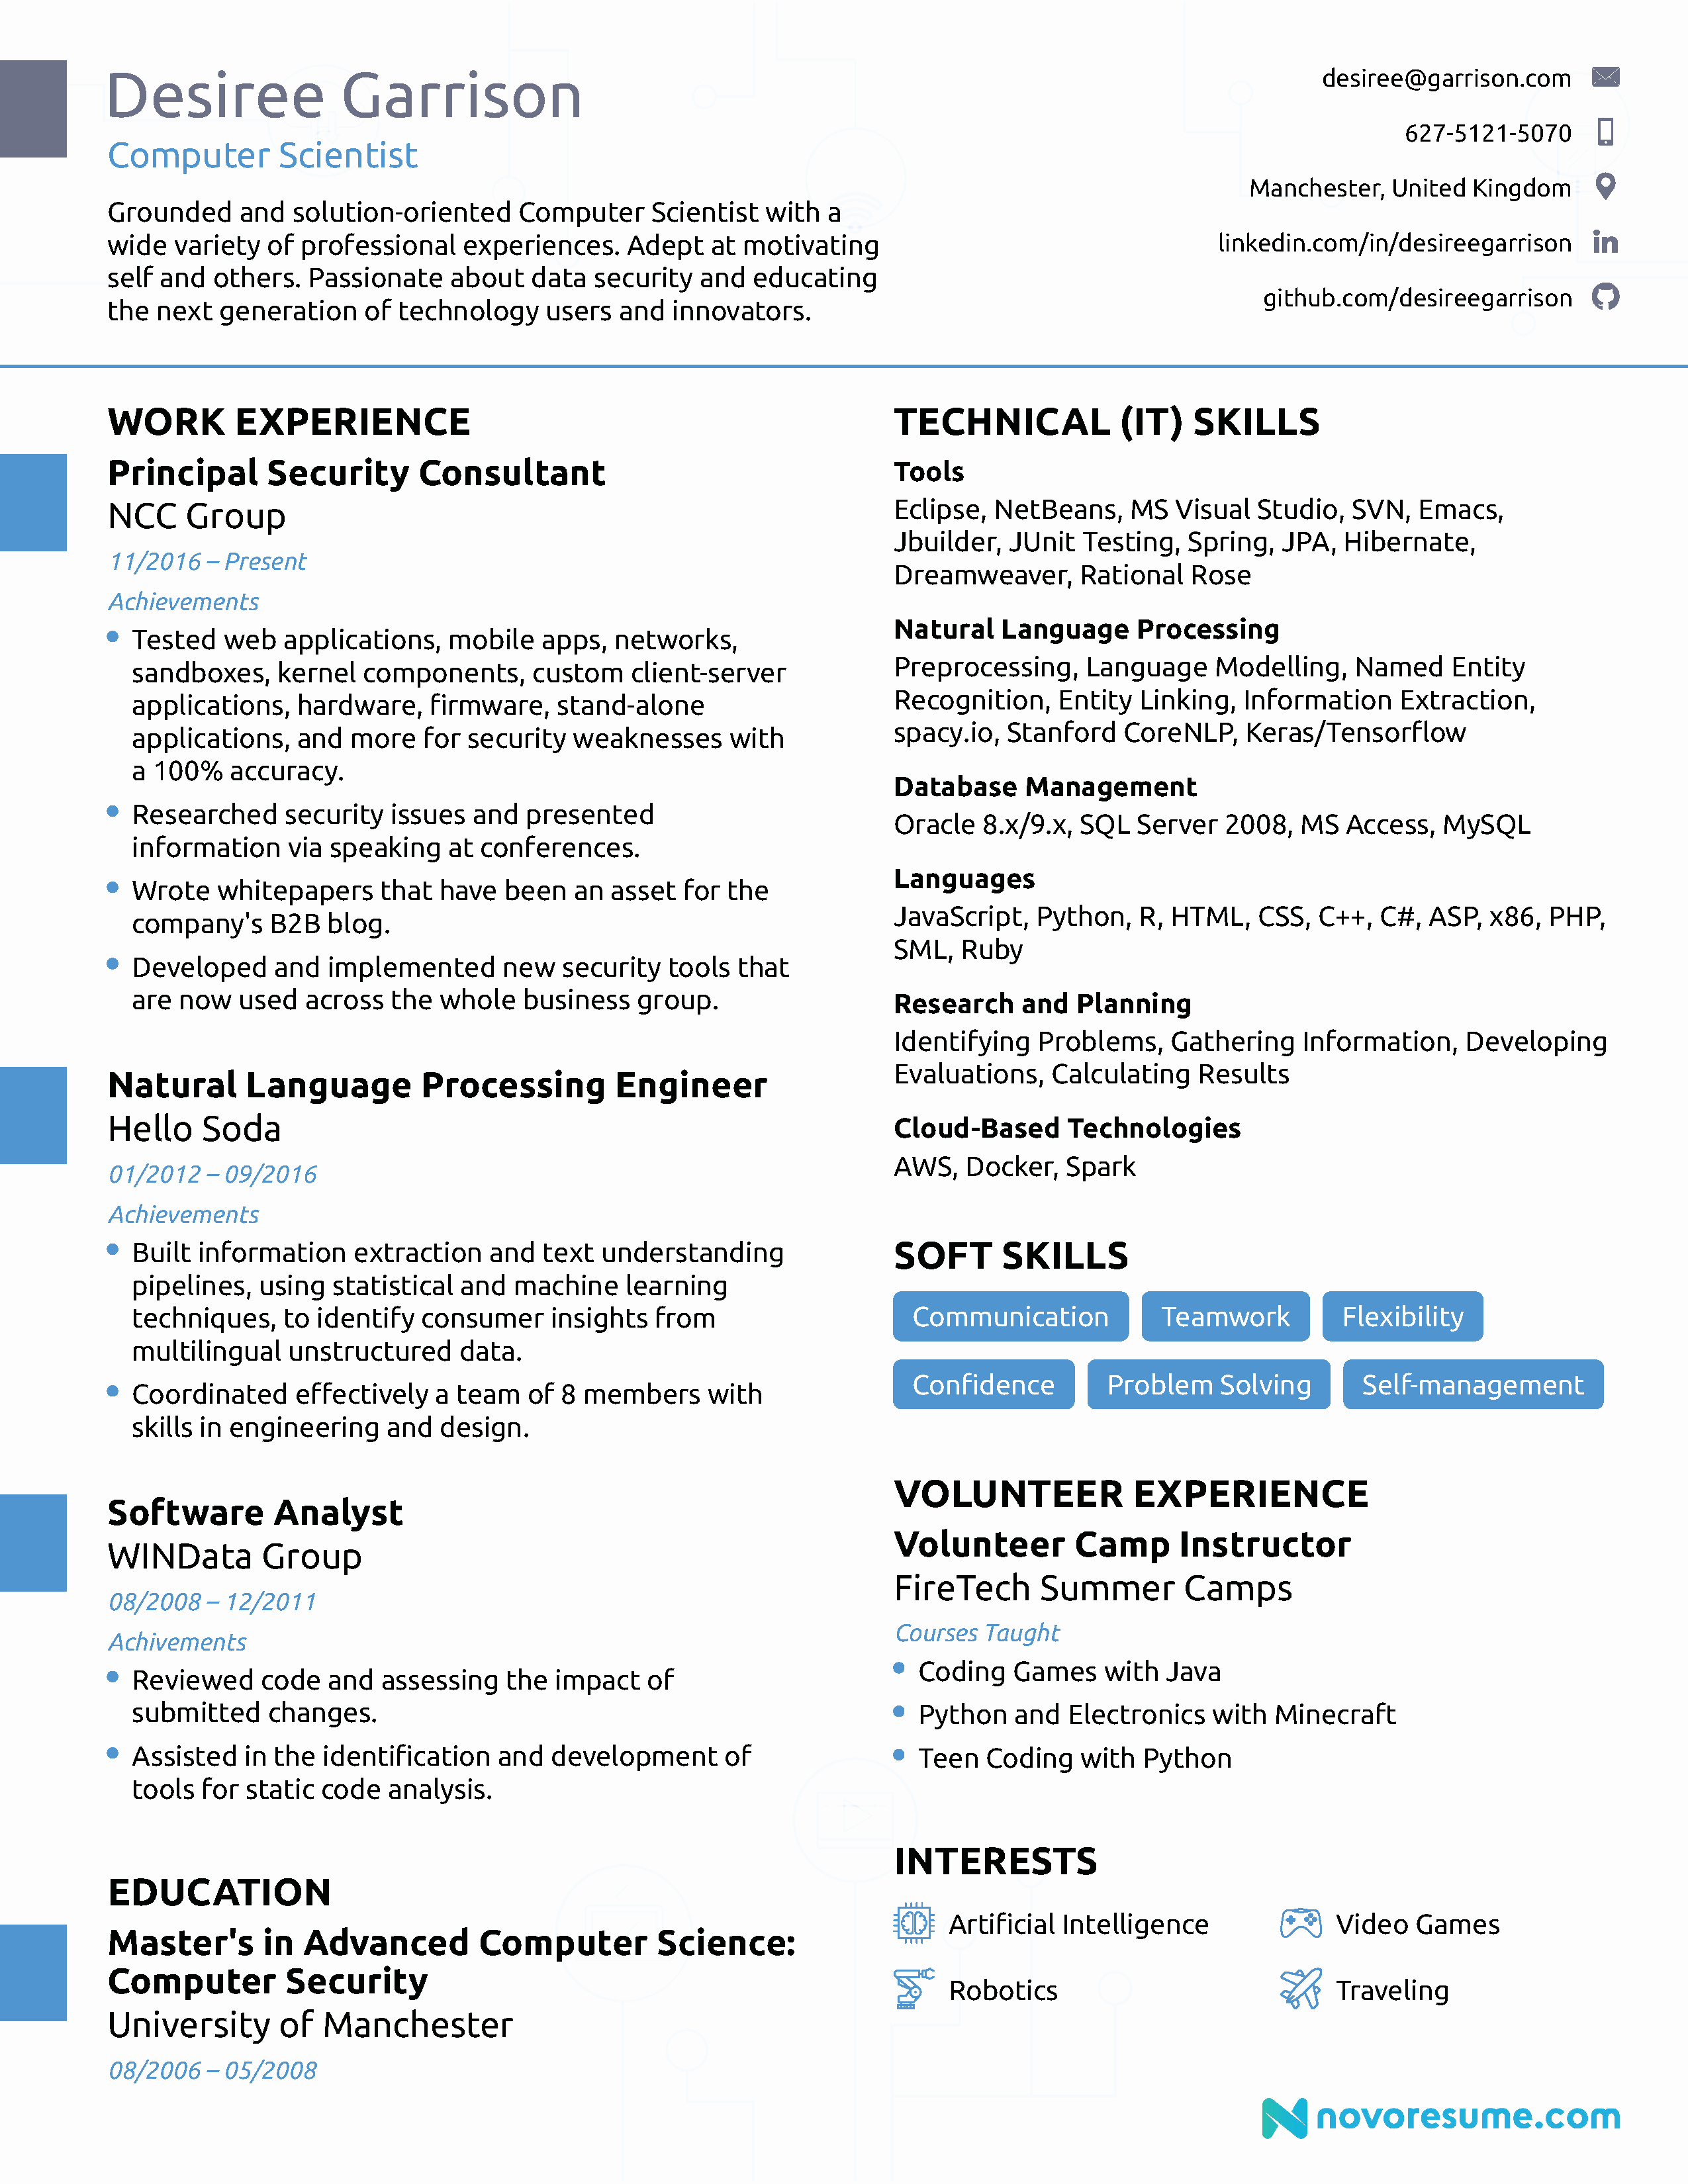 Best Computer Science Resume Inspirational Puter Science Resume [2019] Guide & Examples